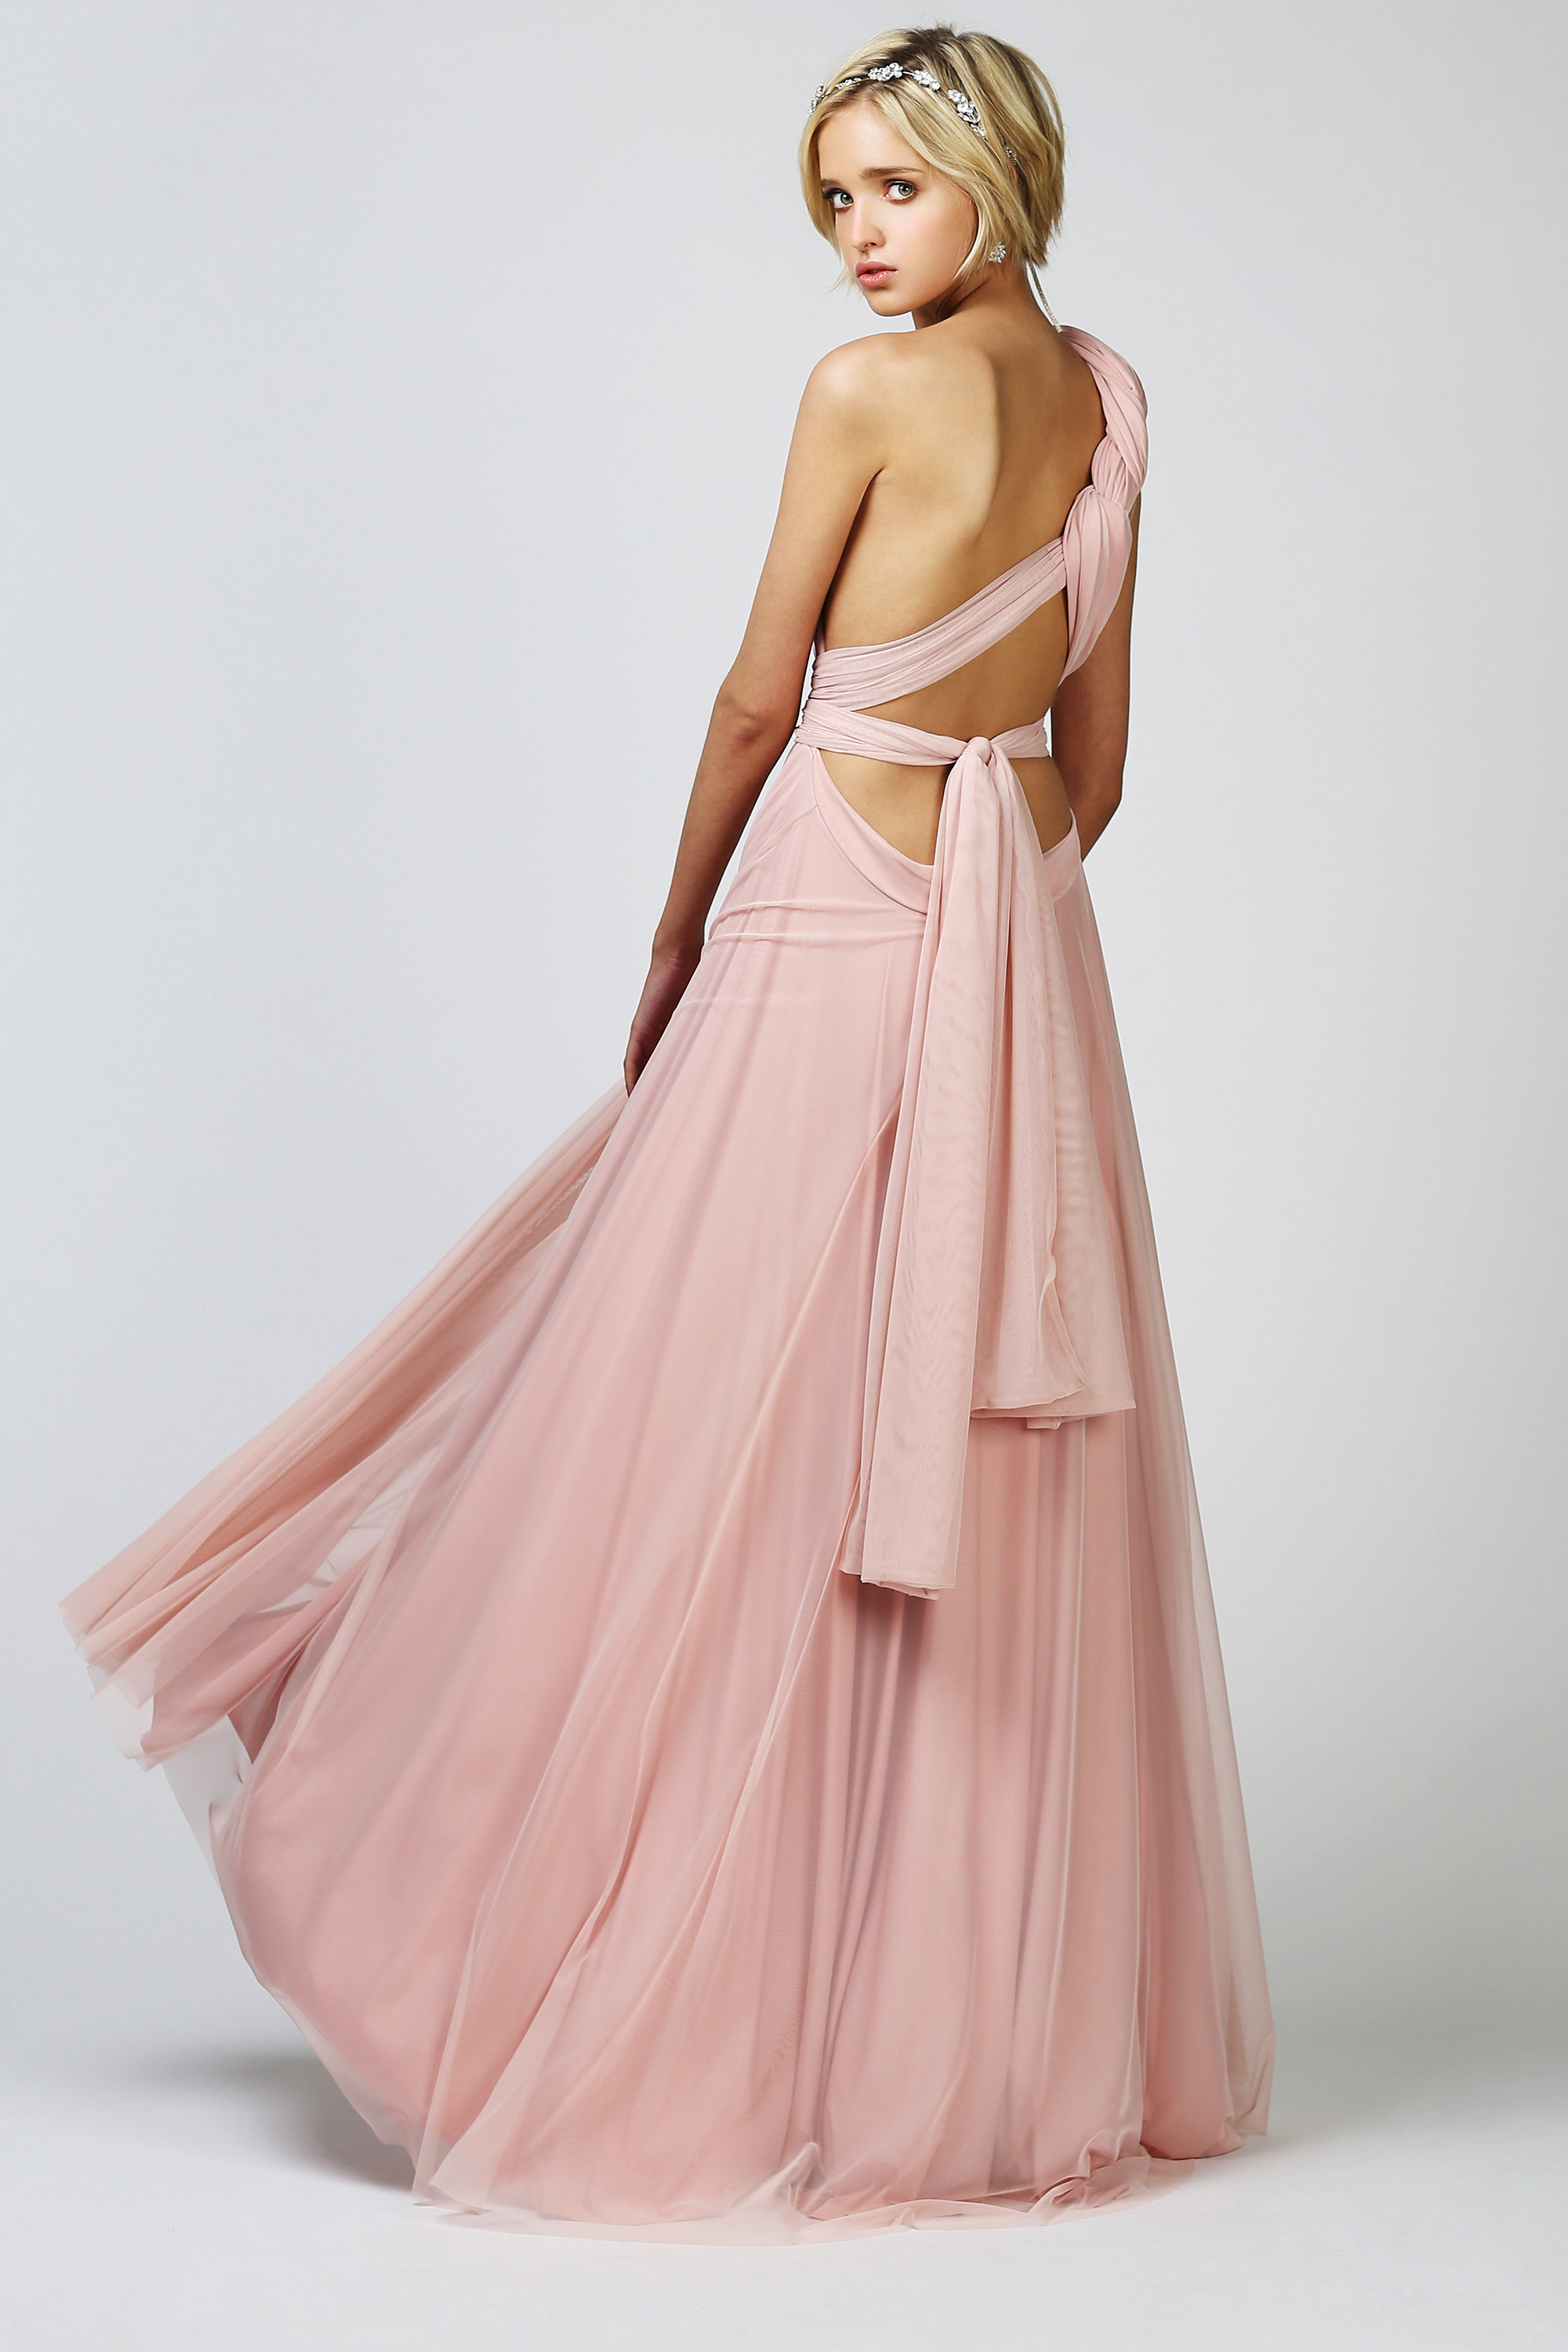 Wedding dress brisbane brisbane babushka ballerina two birds this convertible two birds bridesmaids tulle ball gown is the answer to everything made from a lovely silkjersey blend with a soft tulle these gowns fall ombrellifo Images